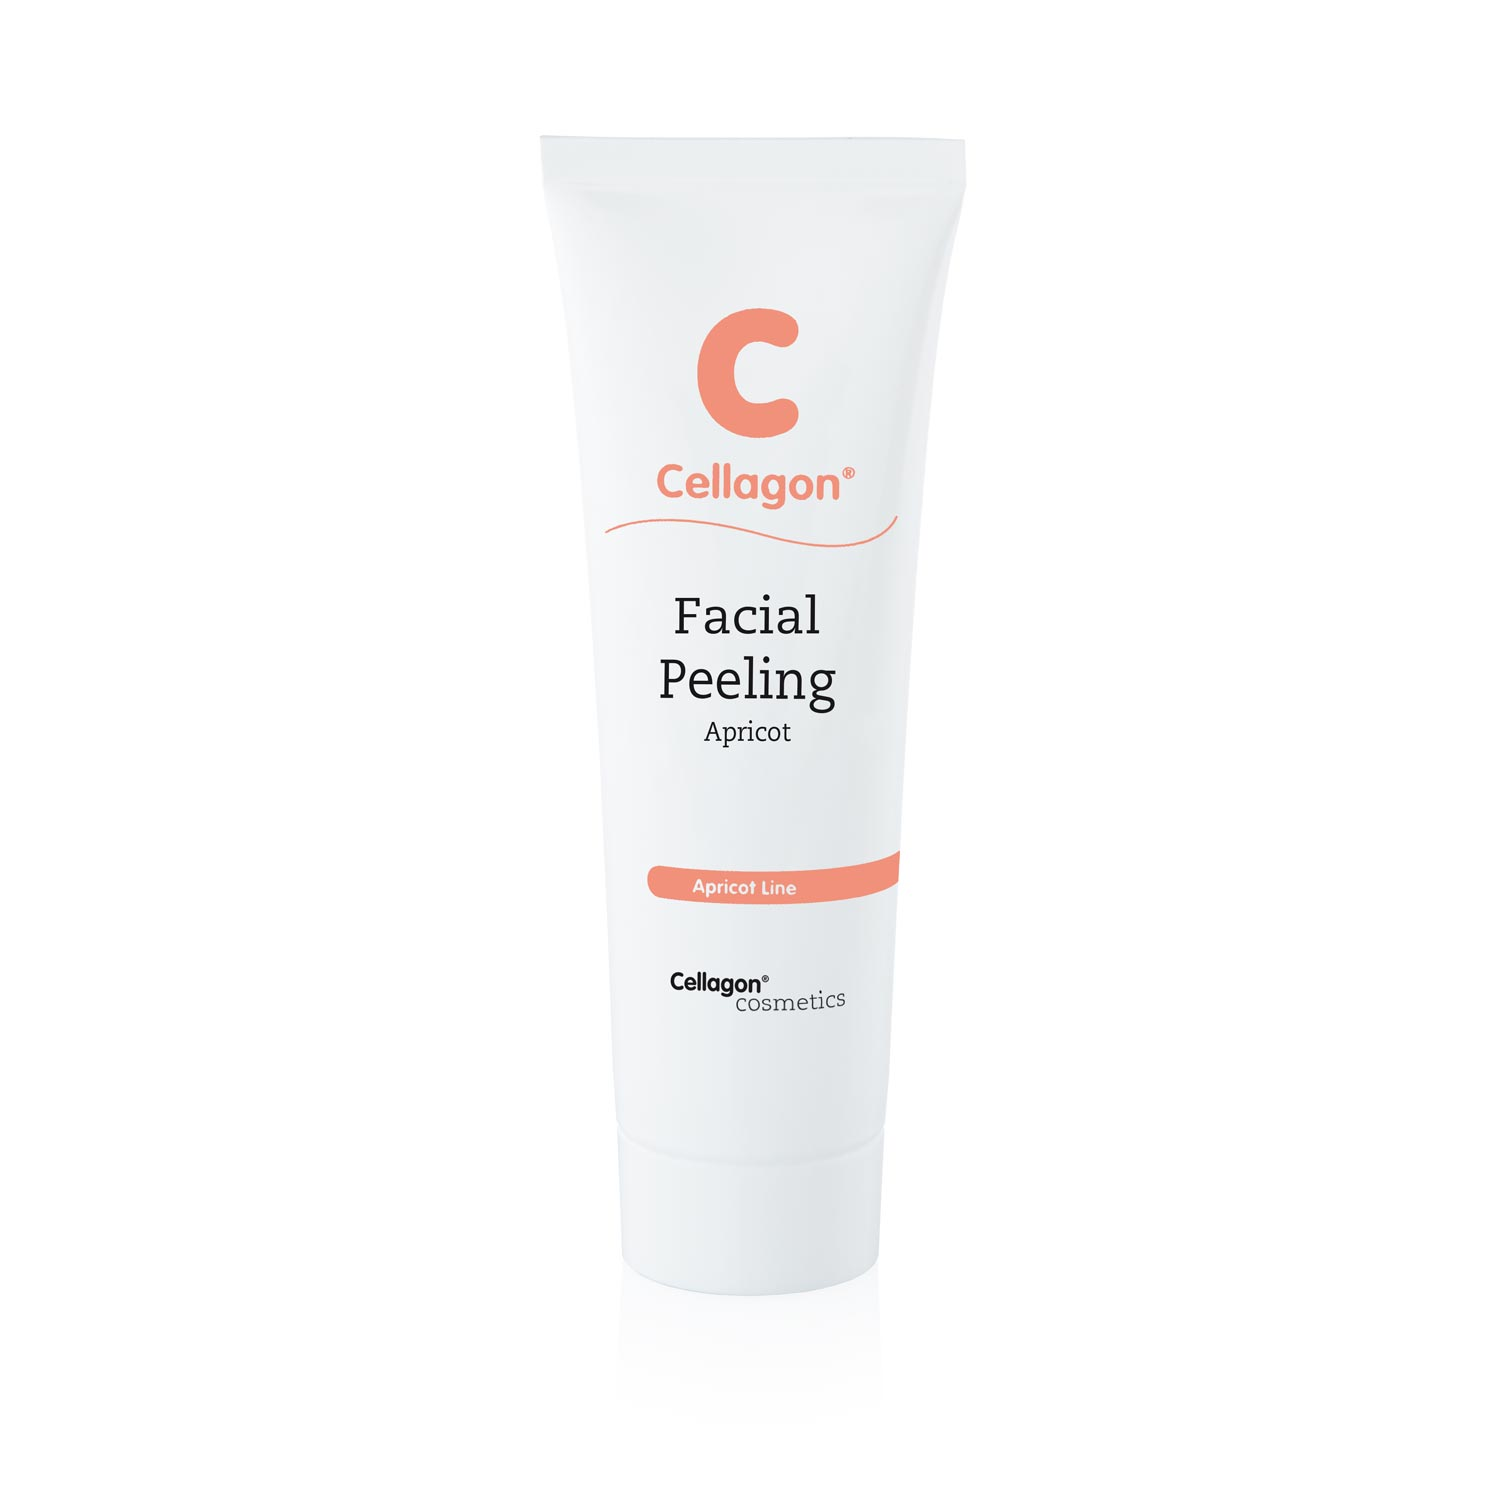 Cellagon Facial Peeling Apricot